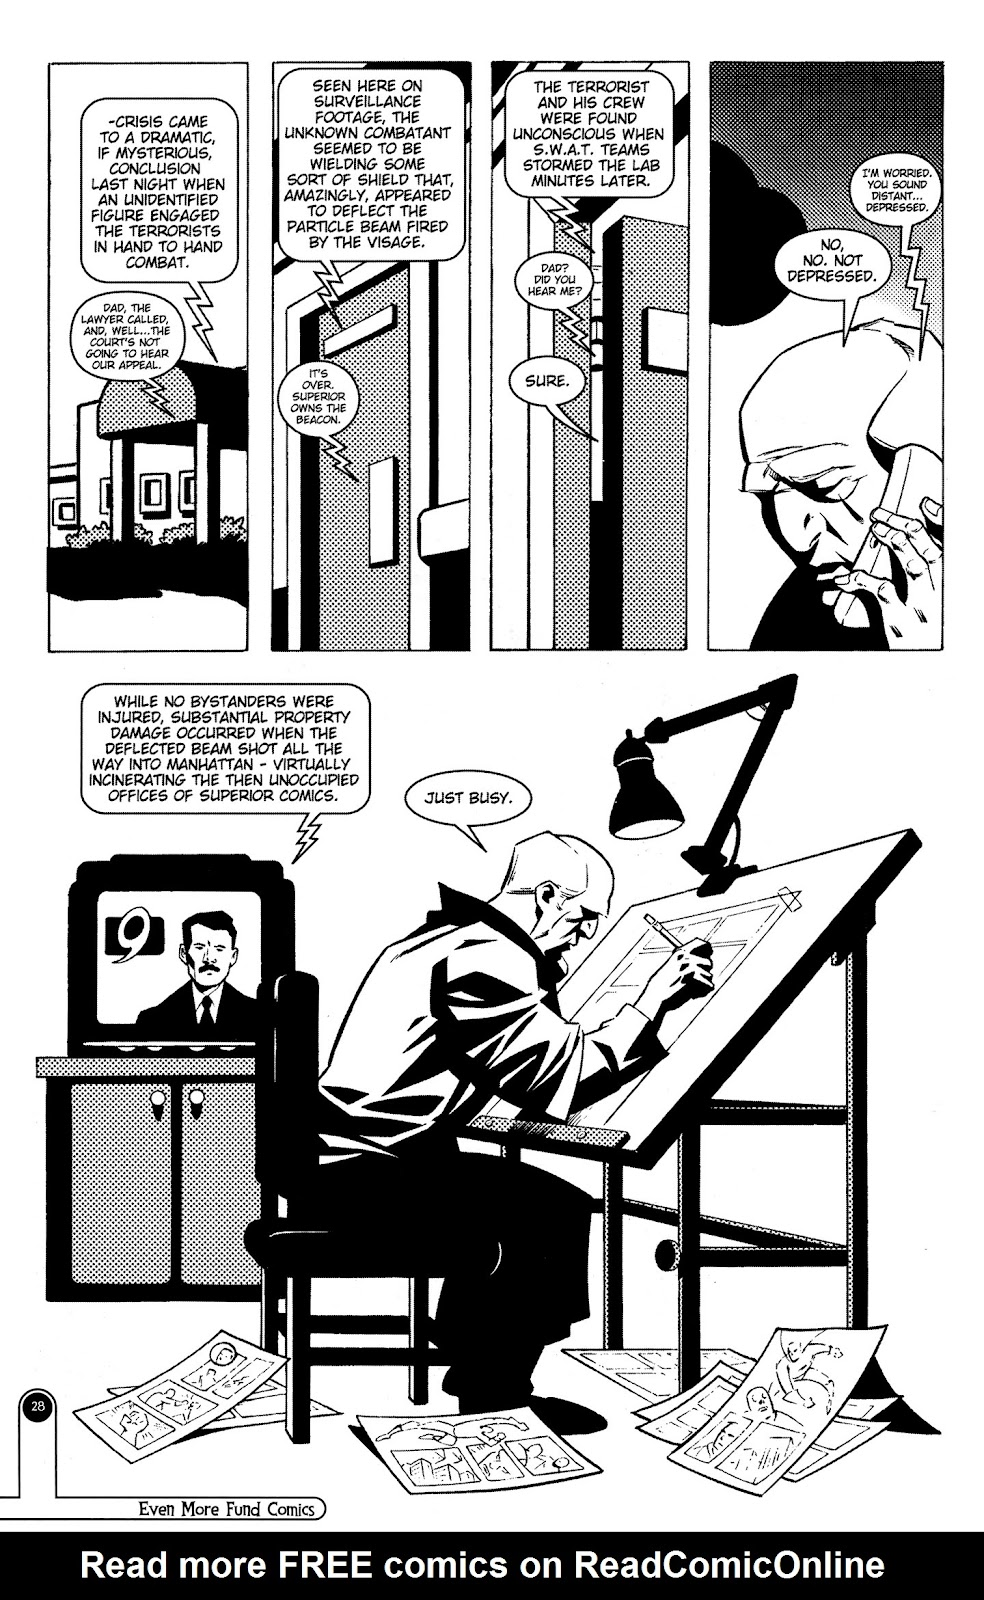 Read online Even More Fund Comics comic -  Issue # TPB (Part 1) - 28